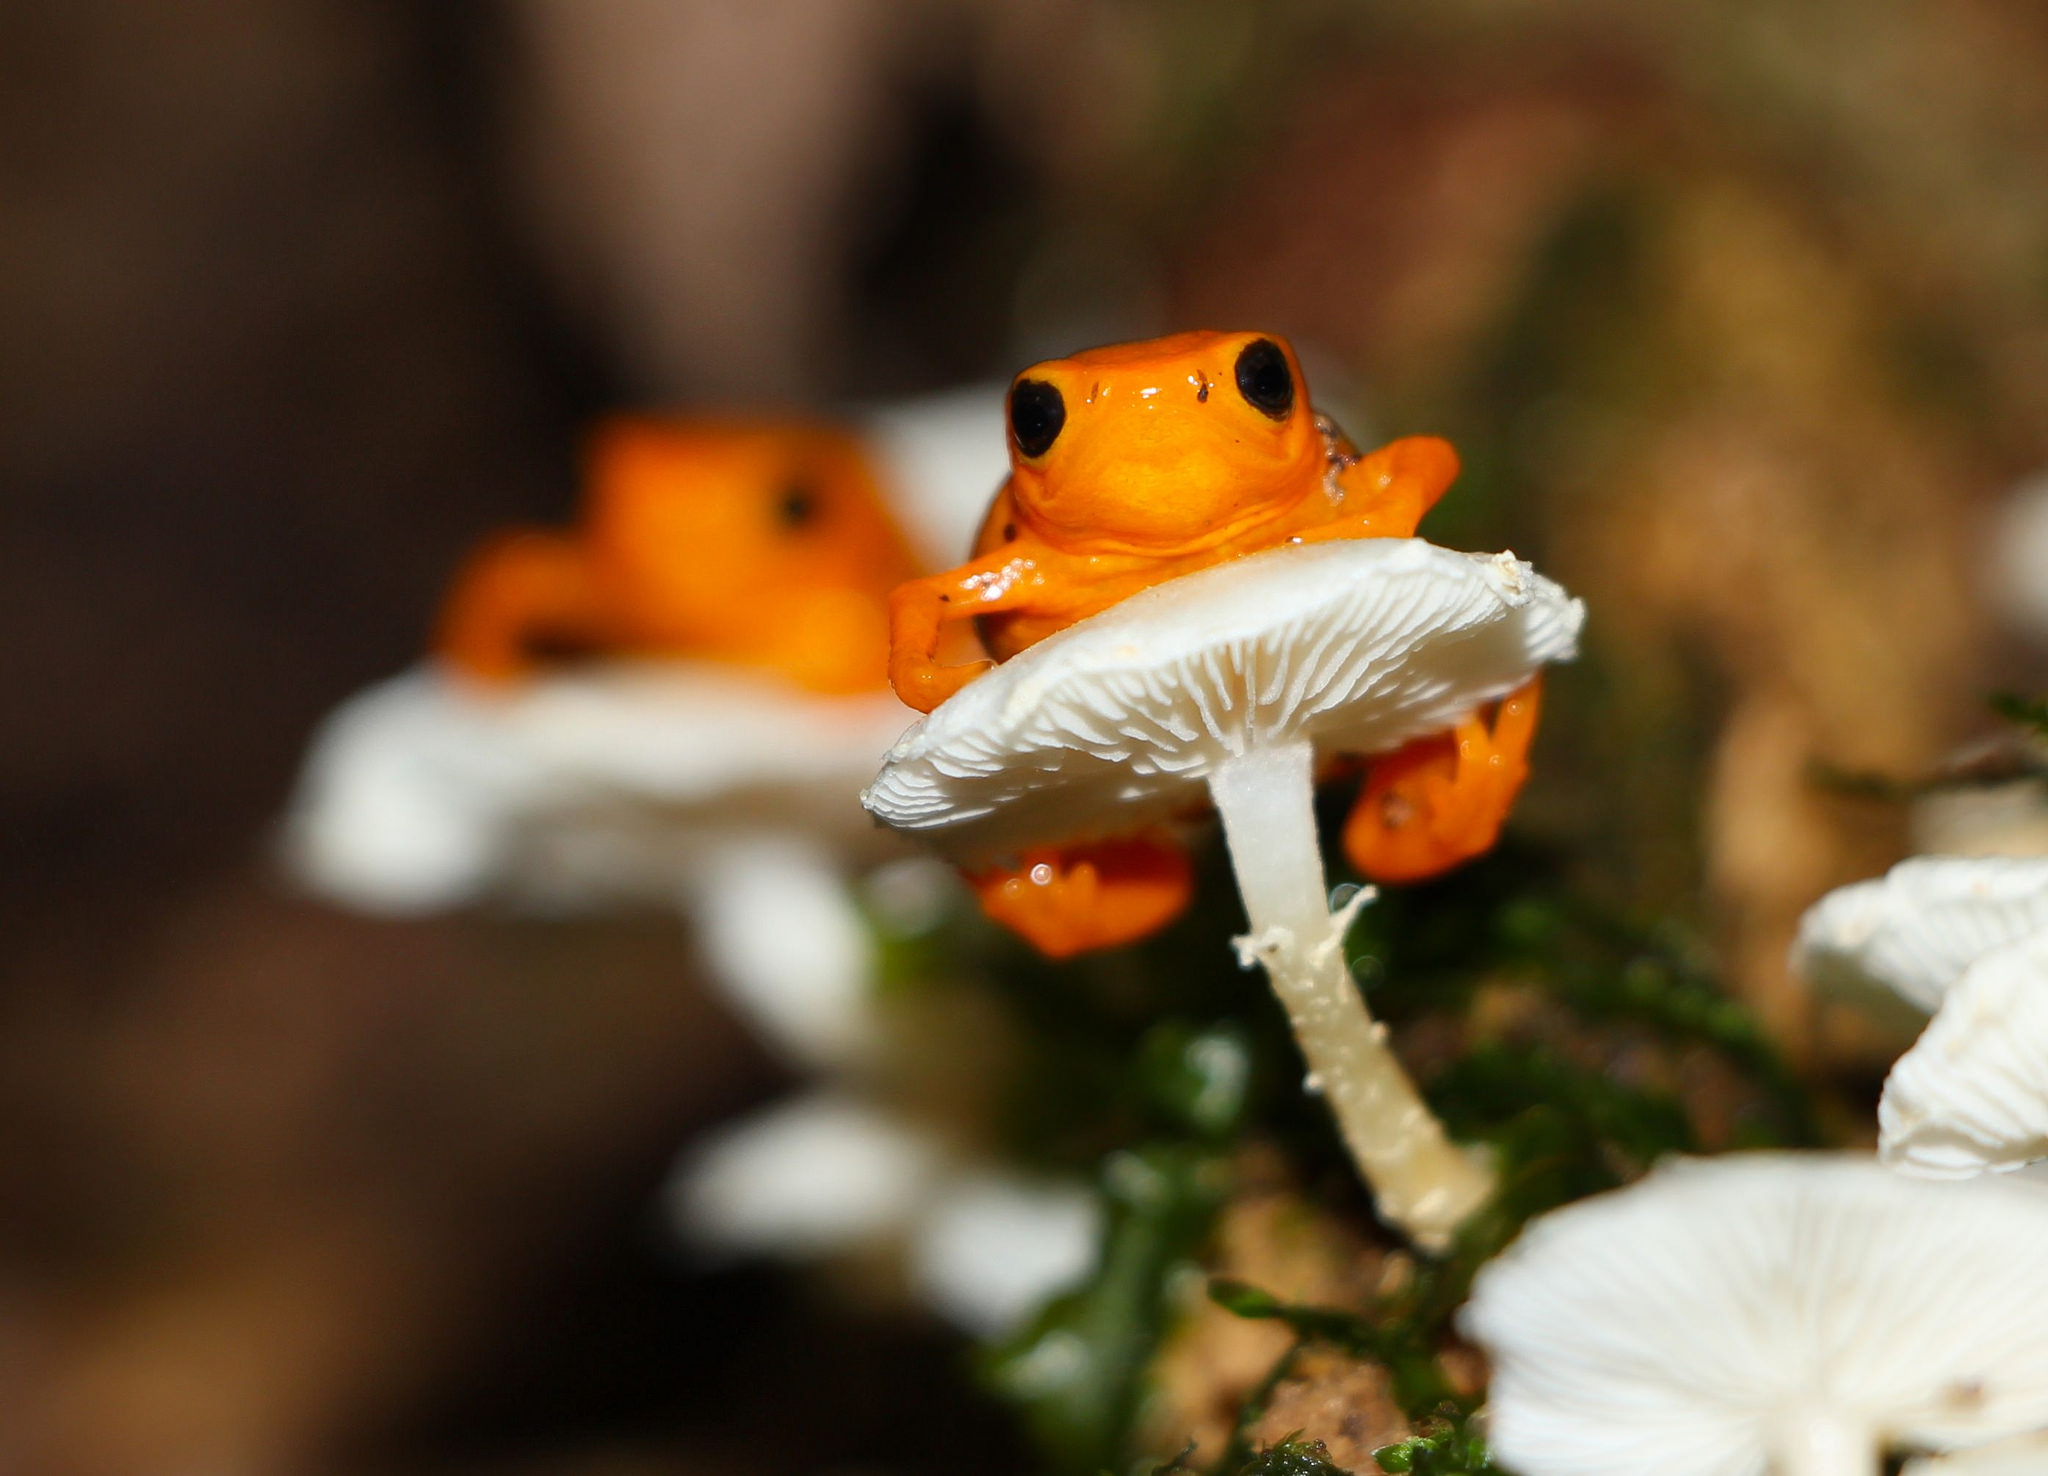 2014 Backyard Frogs, 3rd place winner, Golden Droplet Frog by Christian Spencer.